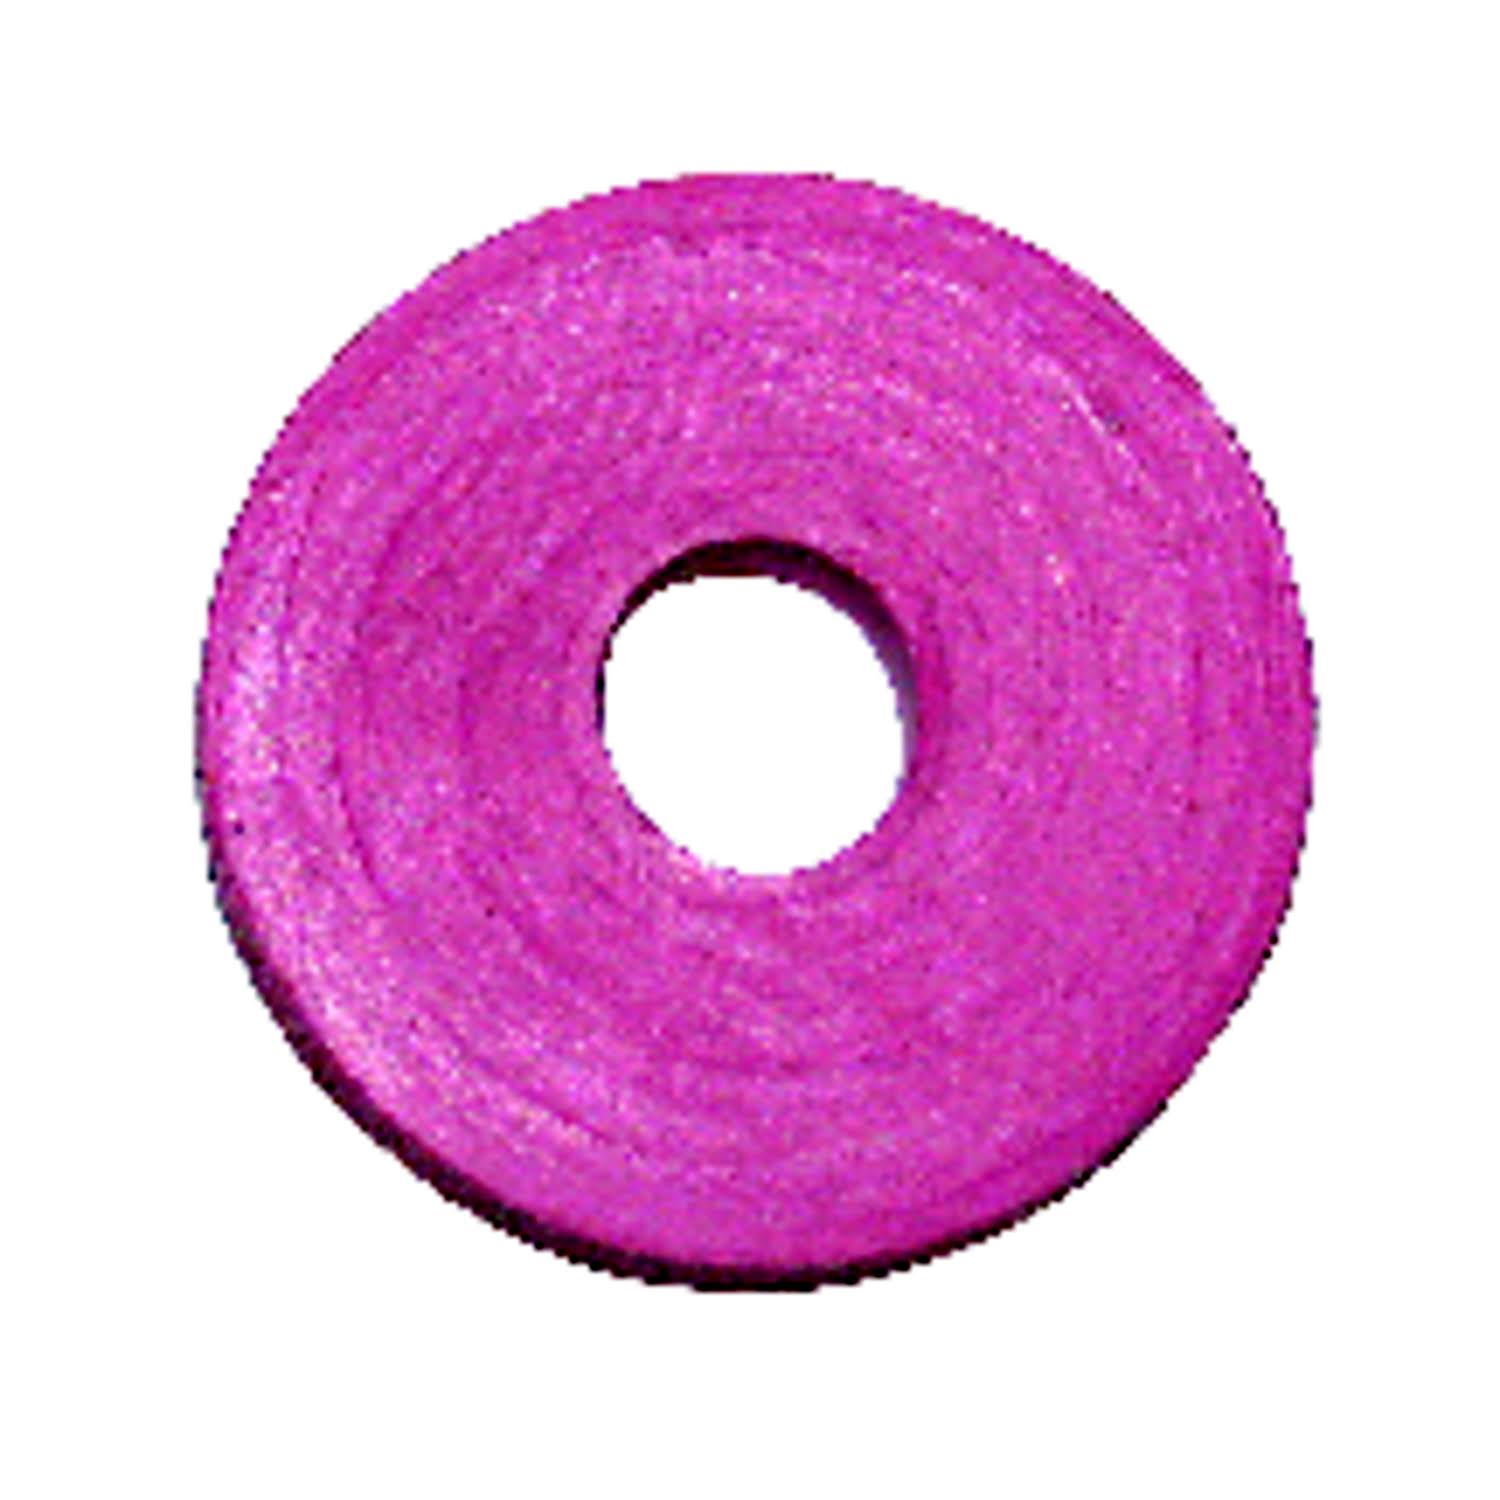 Ace 1/2 Faucet Washers (Pack of 6) 45032